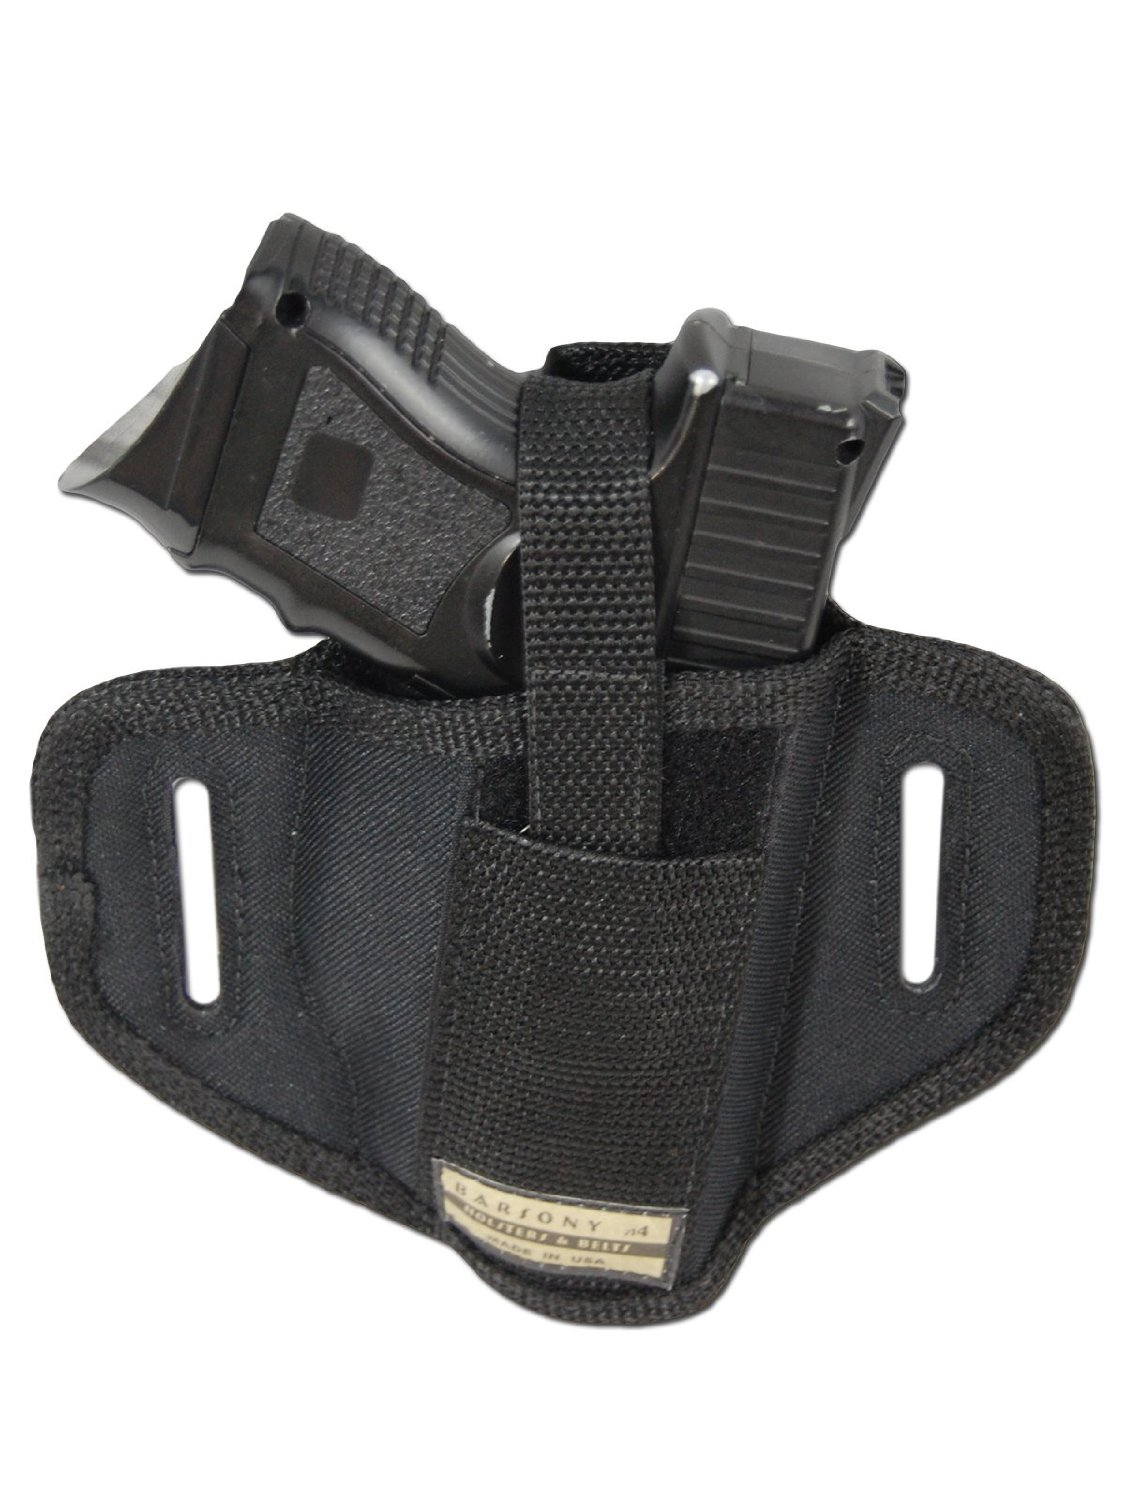 New Barsony 6 Position Ambidextrous Concealment Pancake Holster for Compact 9mm 40 45